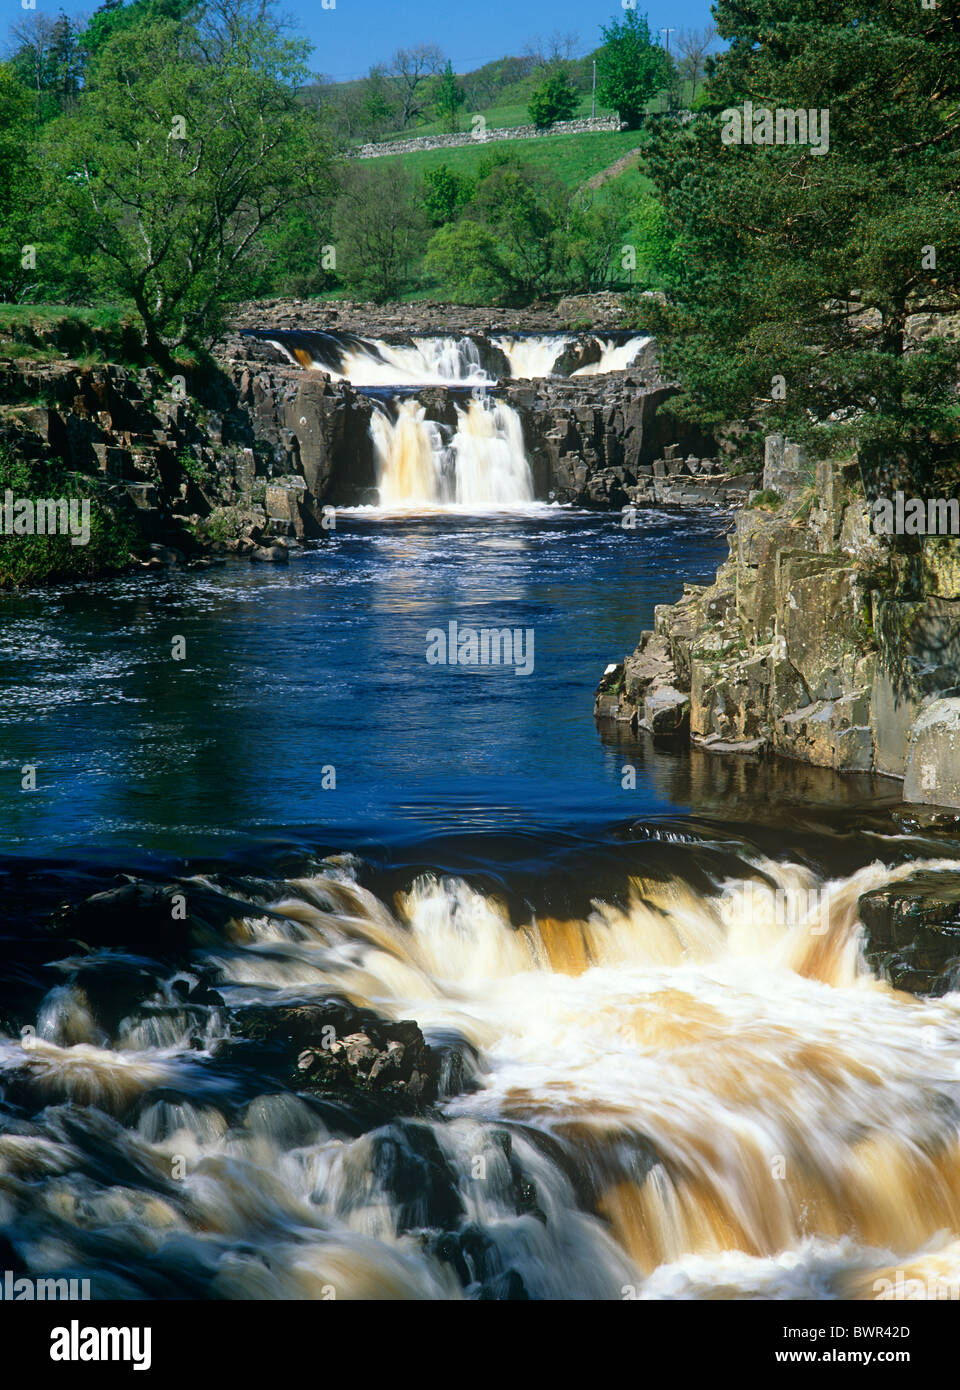 A summer view of Low Force Waterfall and River Tees in Teesdale, County Durham - Stock Image